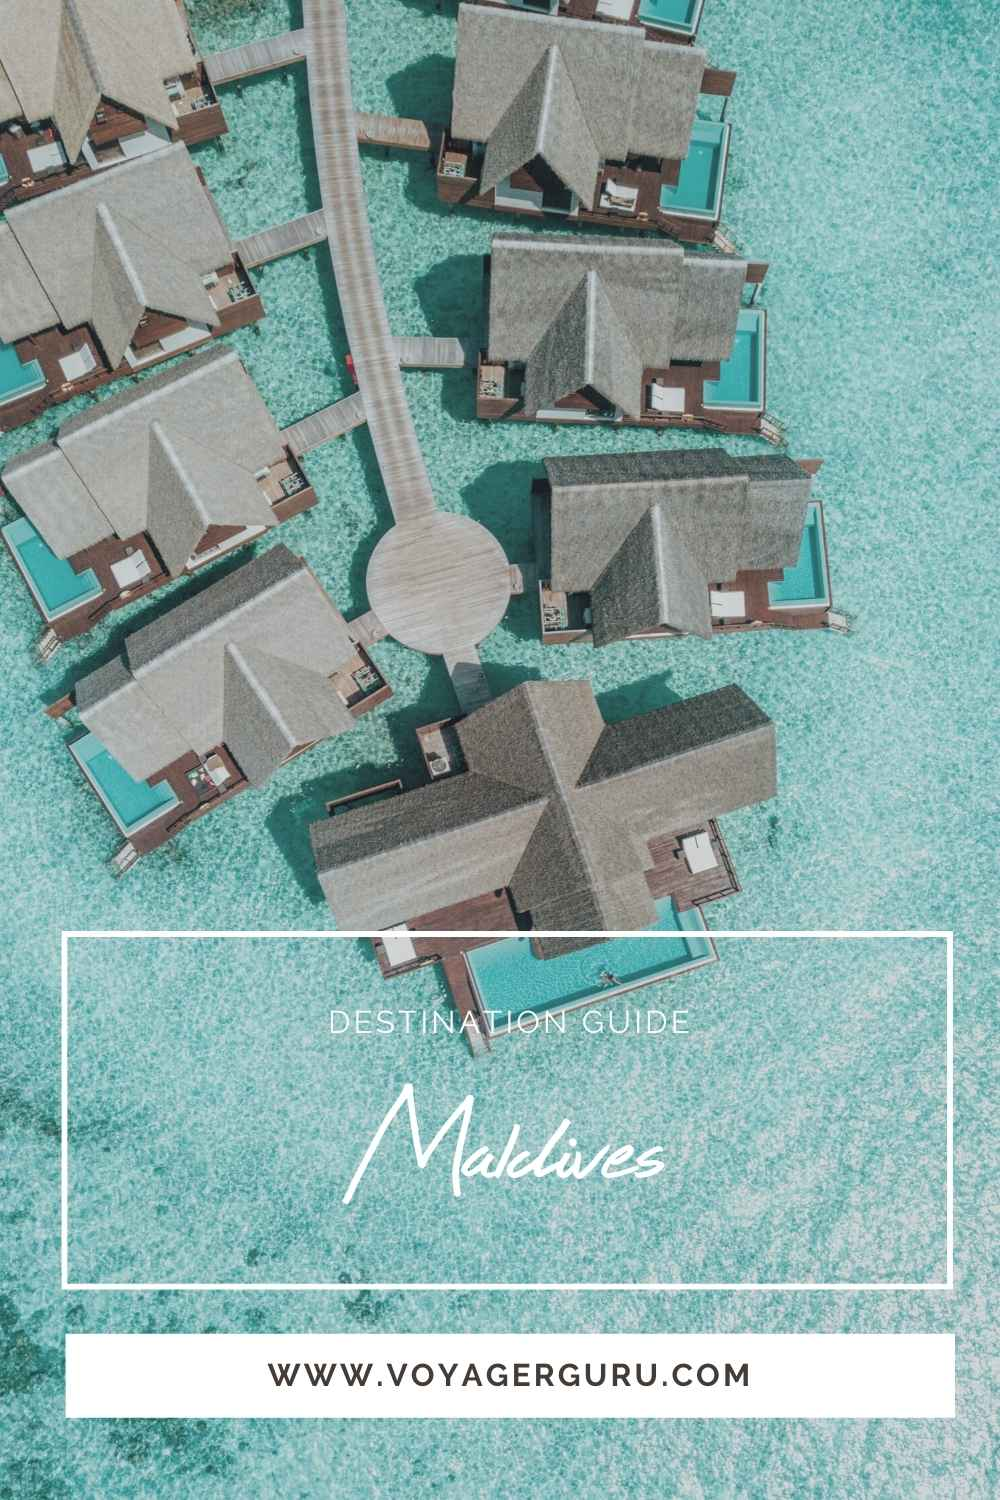 maldives destination guide pin 3